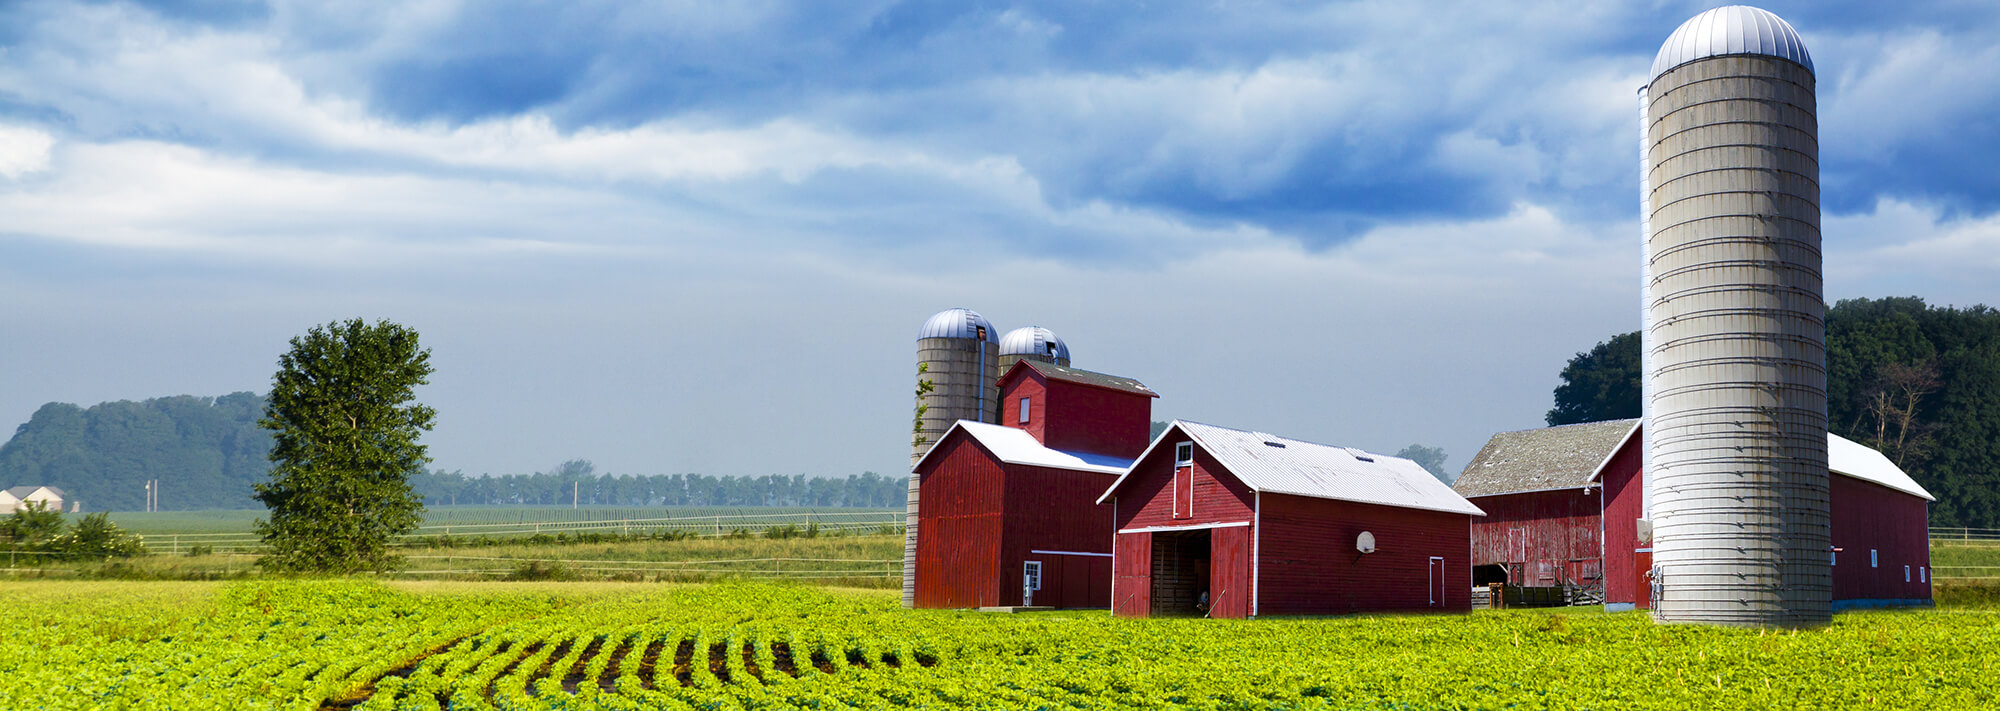 Rural family farm in central Minnesota with a red barn, red outbuildings, and multiple silos